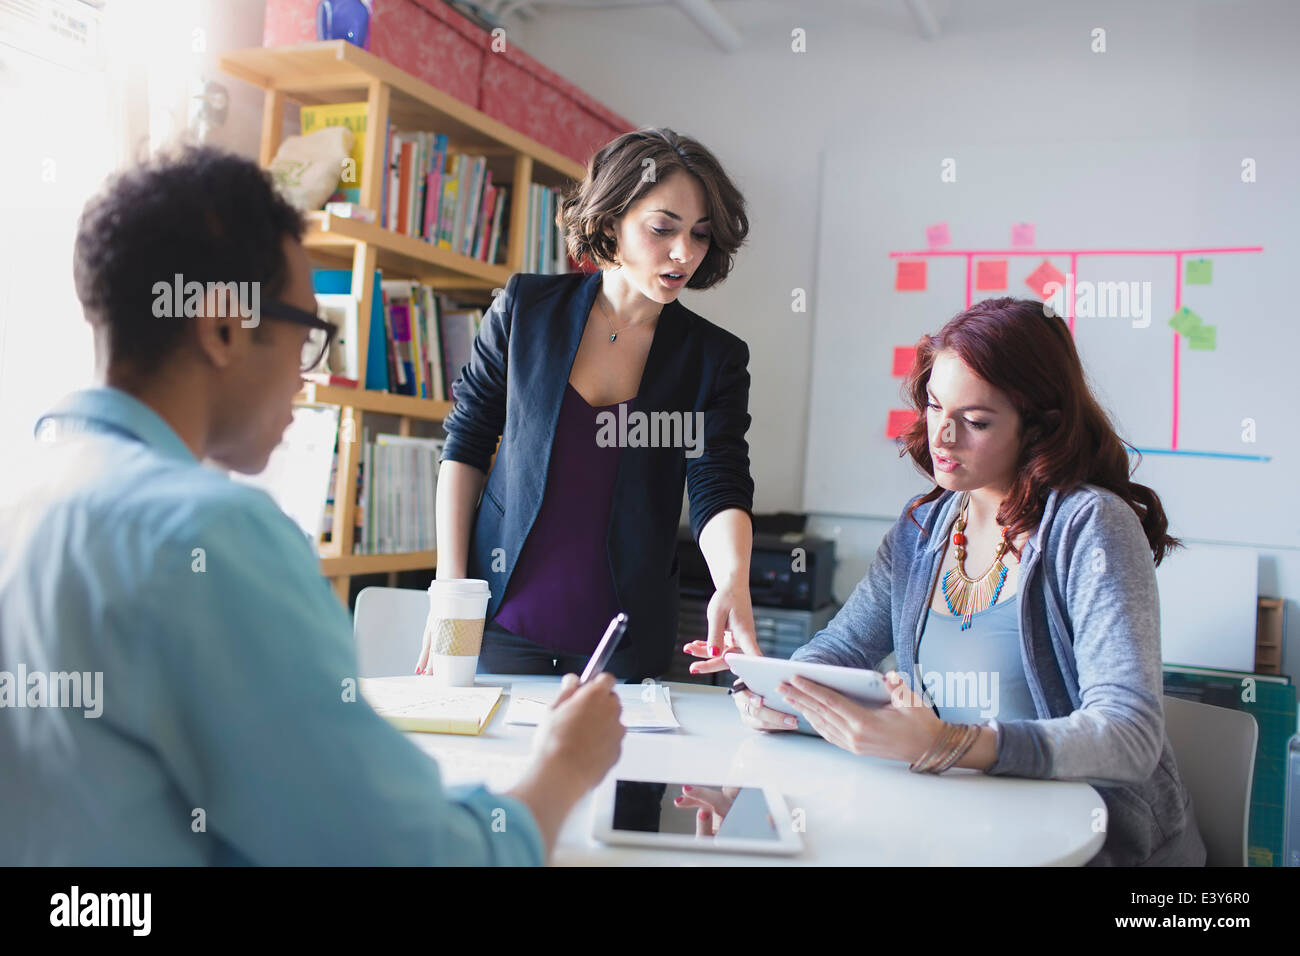 Young woman leading small meeting - Stock Image